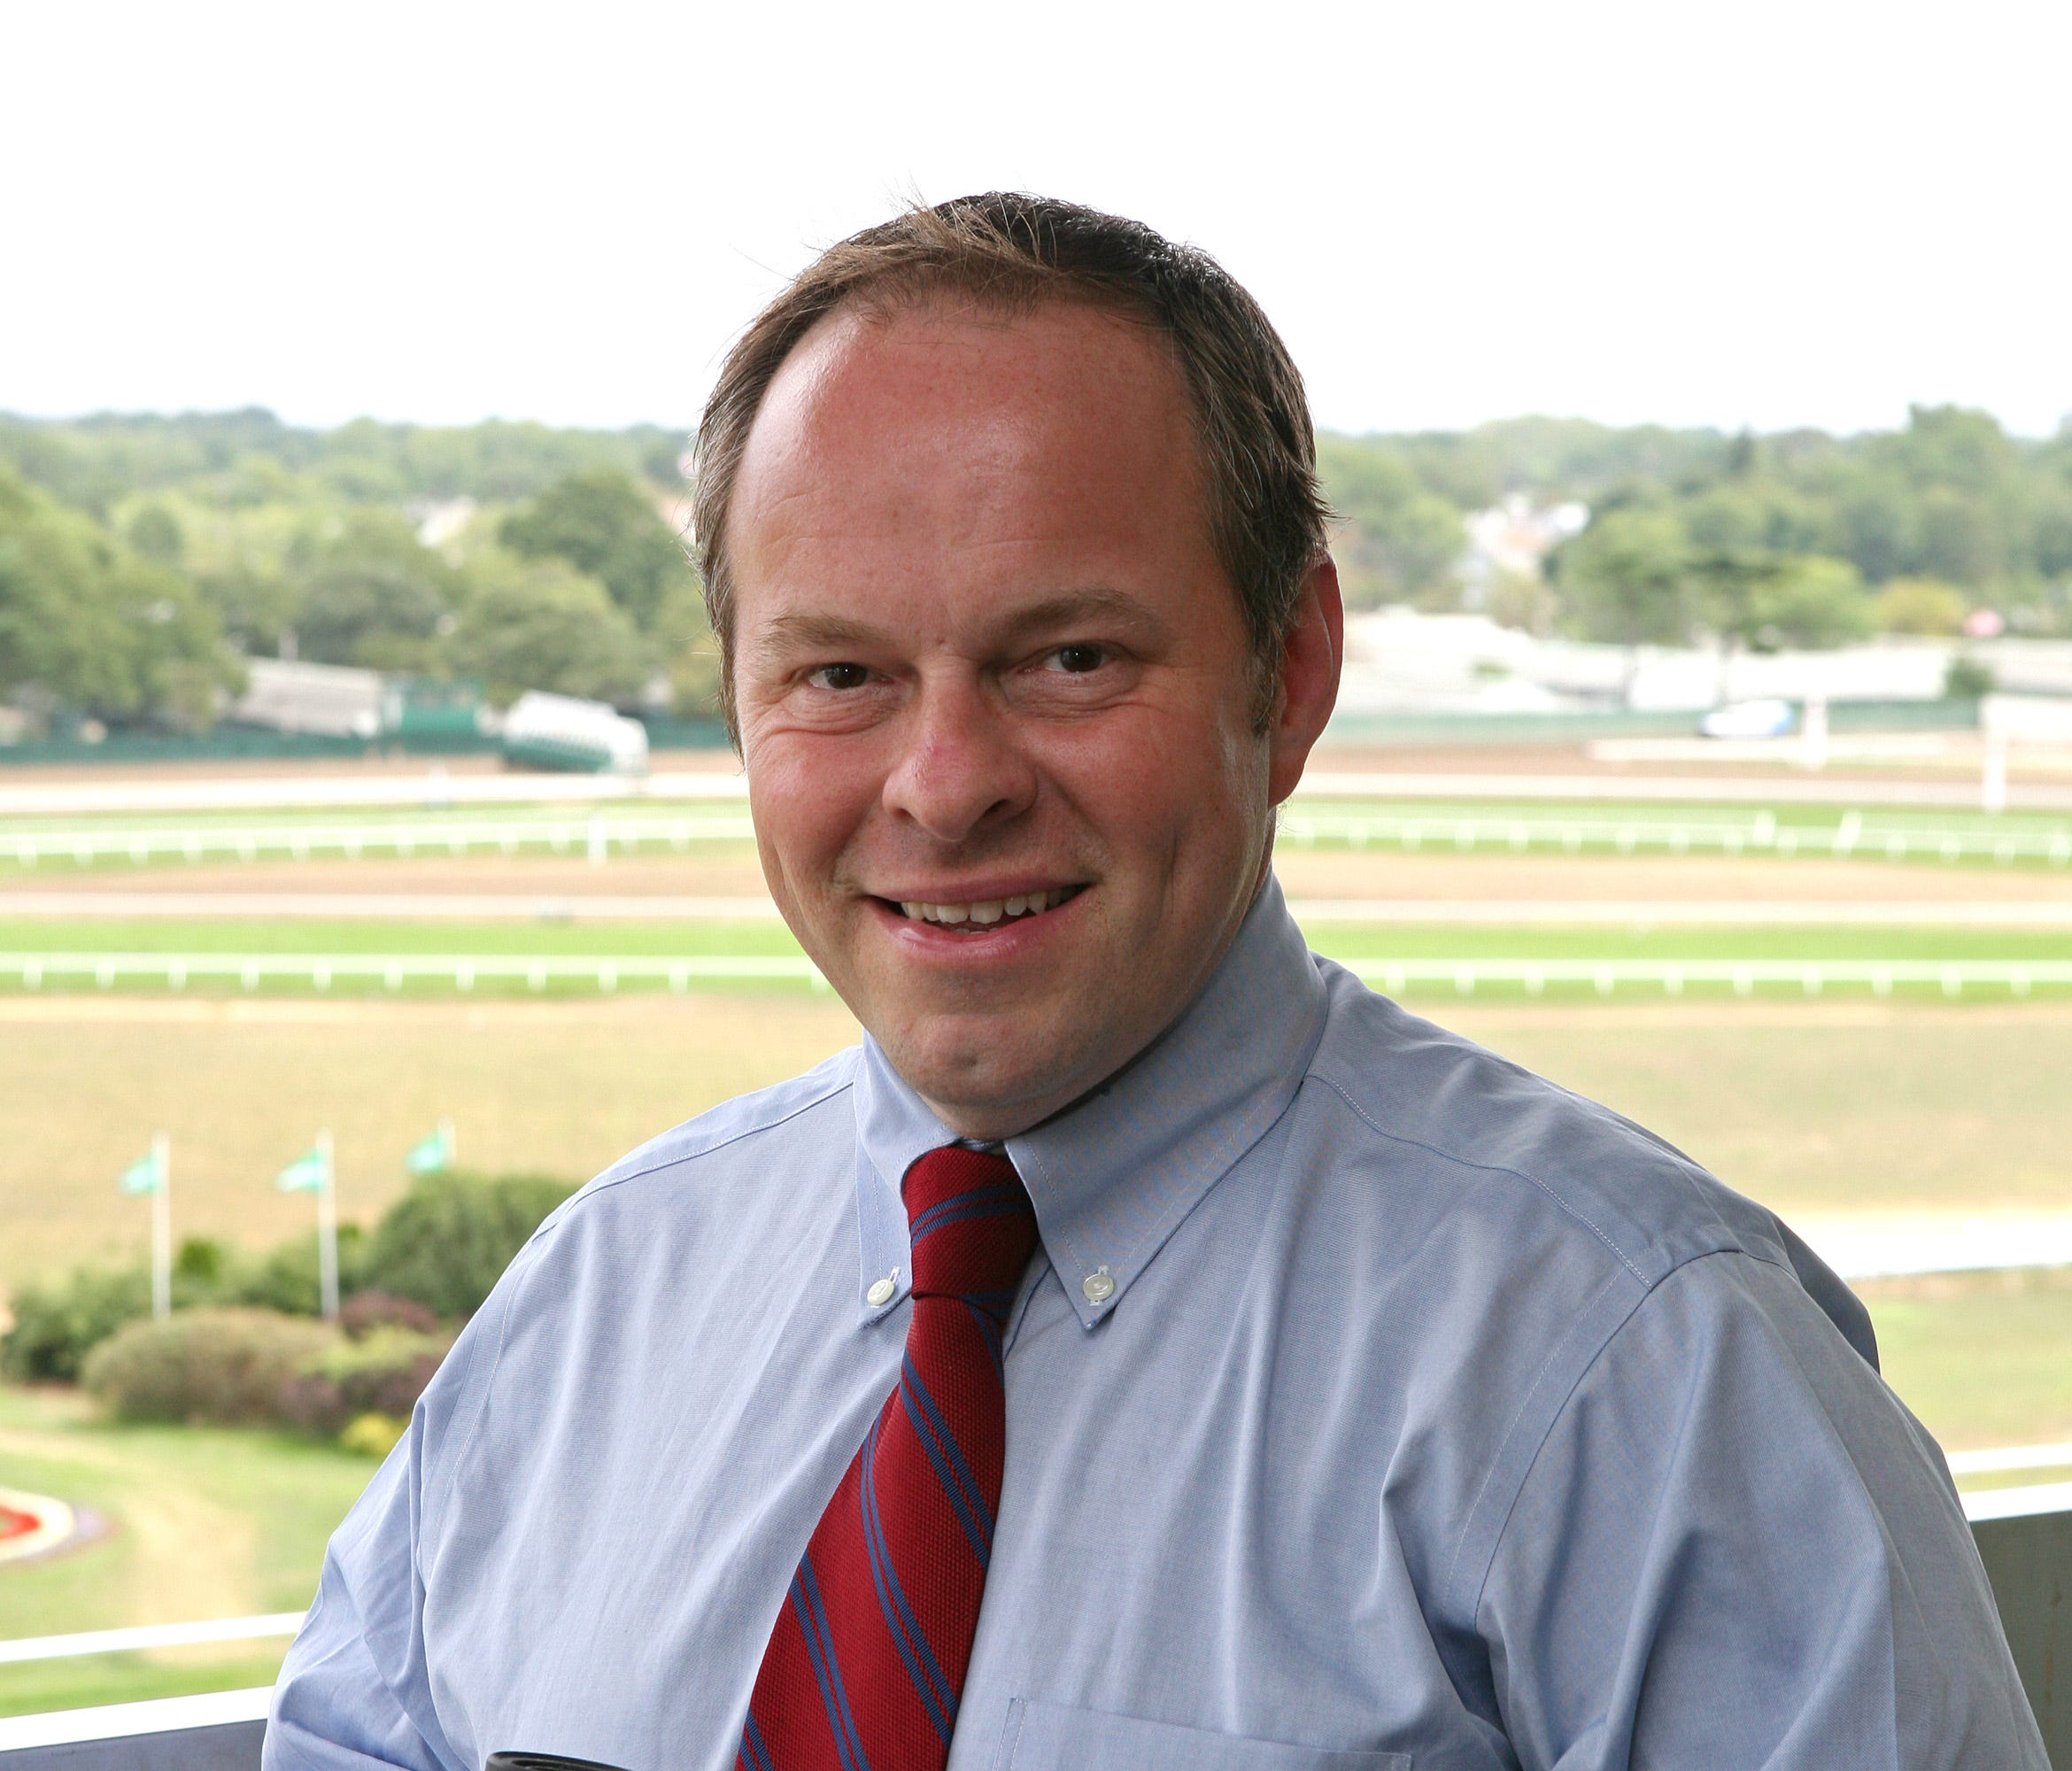 Larry Collmus poses for a portrait at Monmouth Park race course in Oceanport, N.J., in a file photo from 2010.